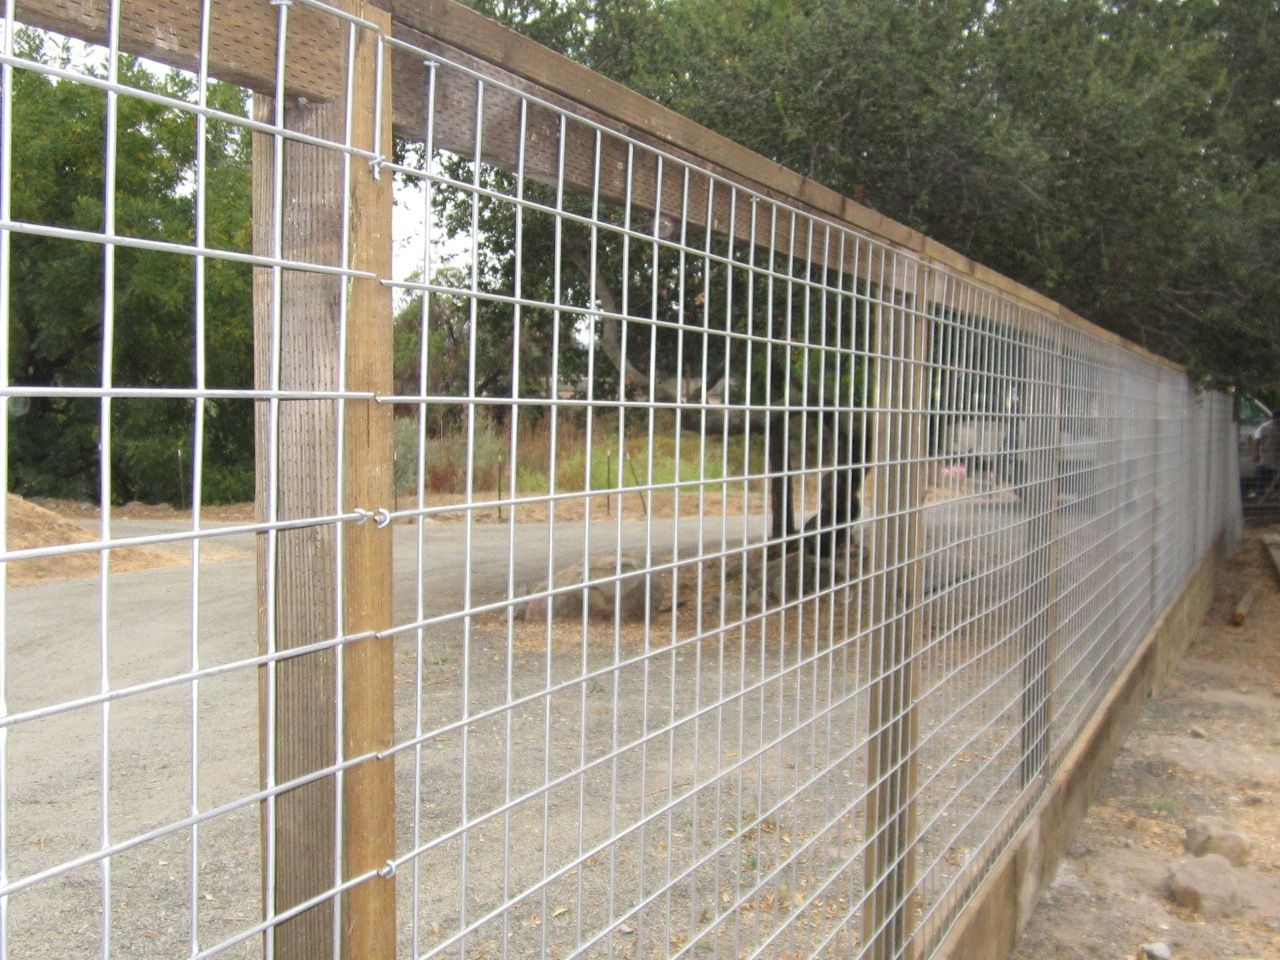 6 39 tall 4x4 hi five with kickboard hi five hog panel fence pinterest 4x4 fences and yards - Build wire fence foundation ...